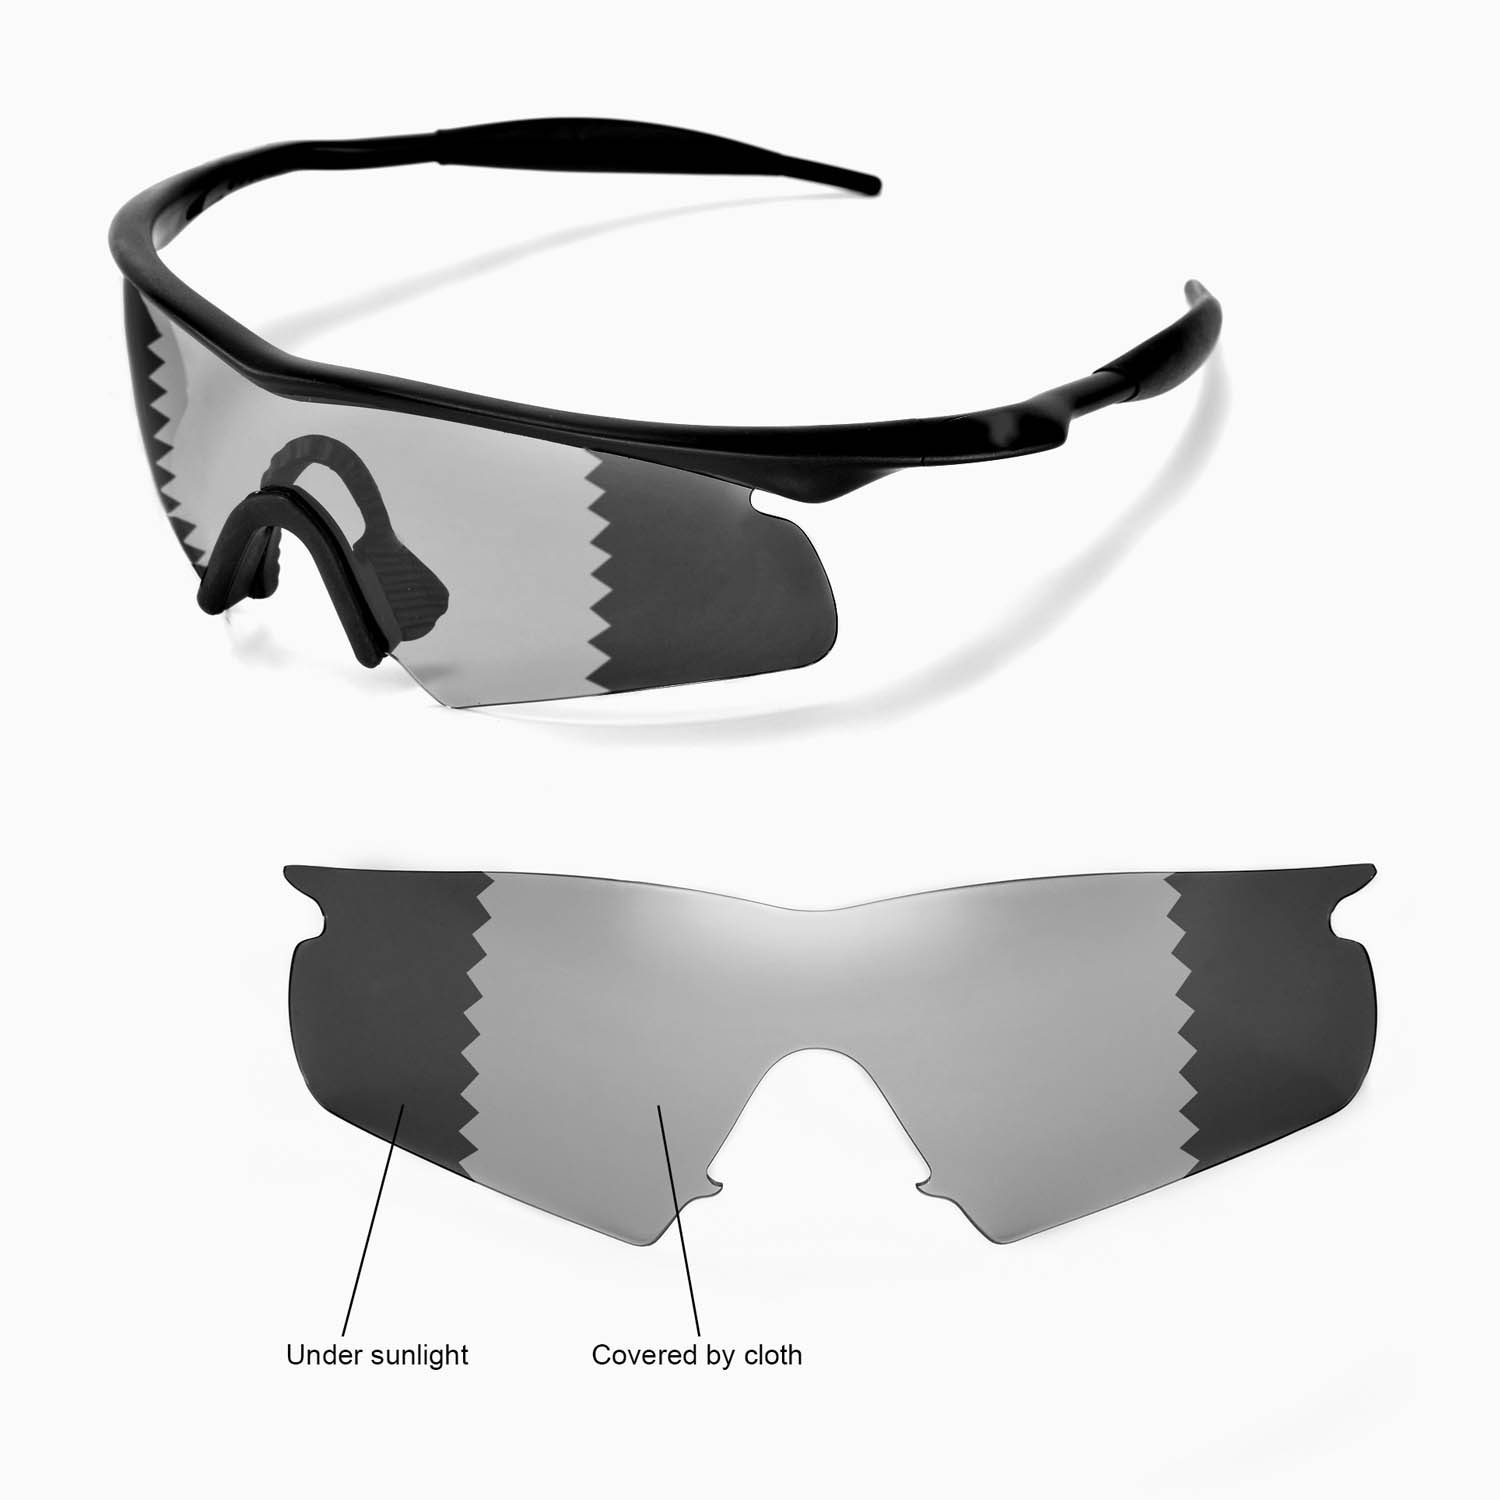 74423c406b0 Details about New Walleva Polarized Transition Photochromic Lenses For Oakley  M Frame Hybrid